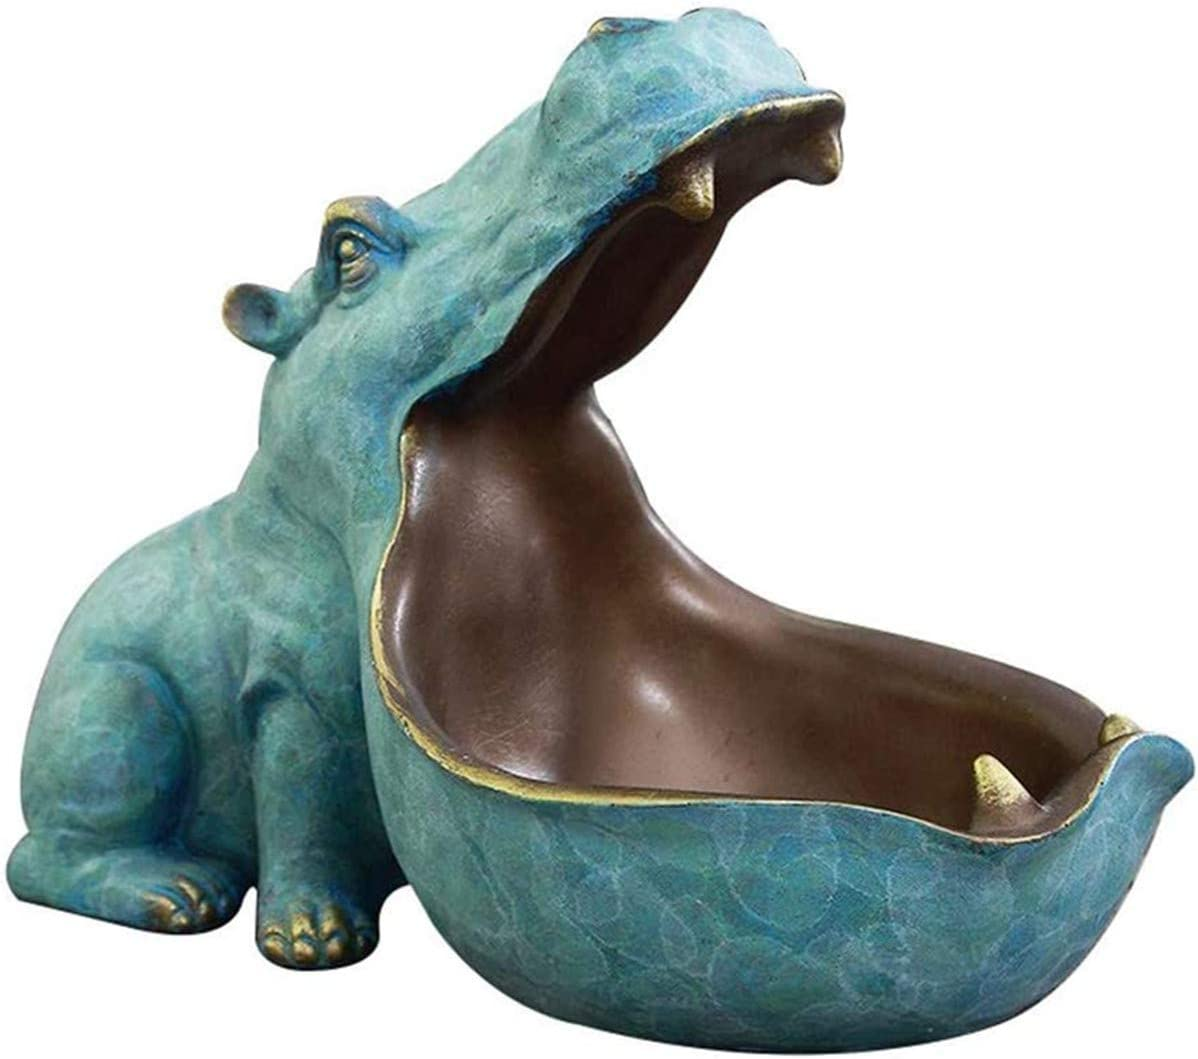 Big Mouth Hippo Key Bowl Resin Hippo Figurine Key Storage Holder Desktop Candy Dish Organizer For Home Decoration Office Key Candy Coin Storage Green Amazon Co Uk Kitchen Home